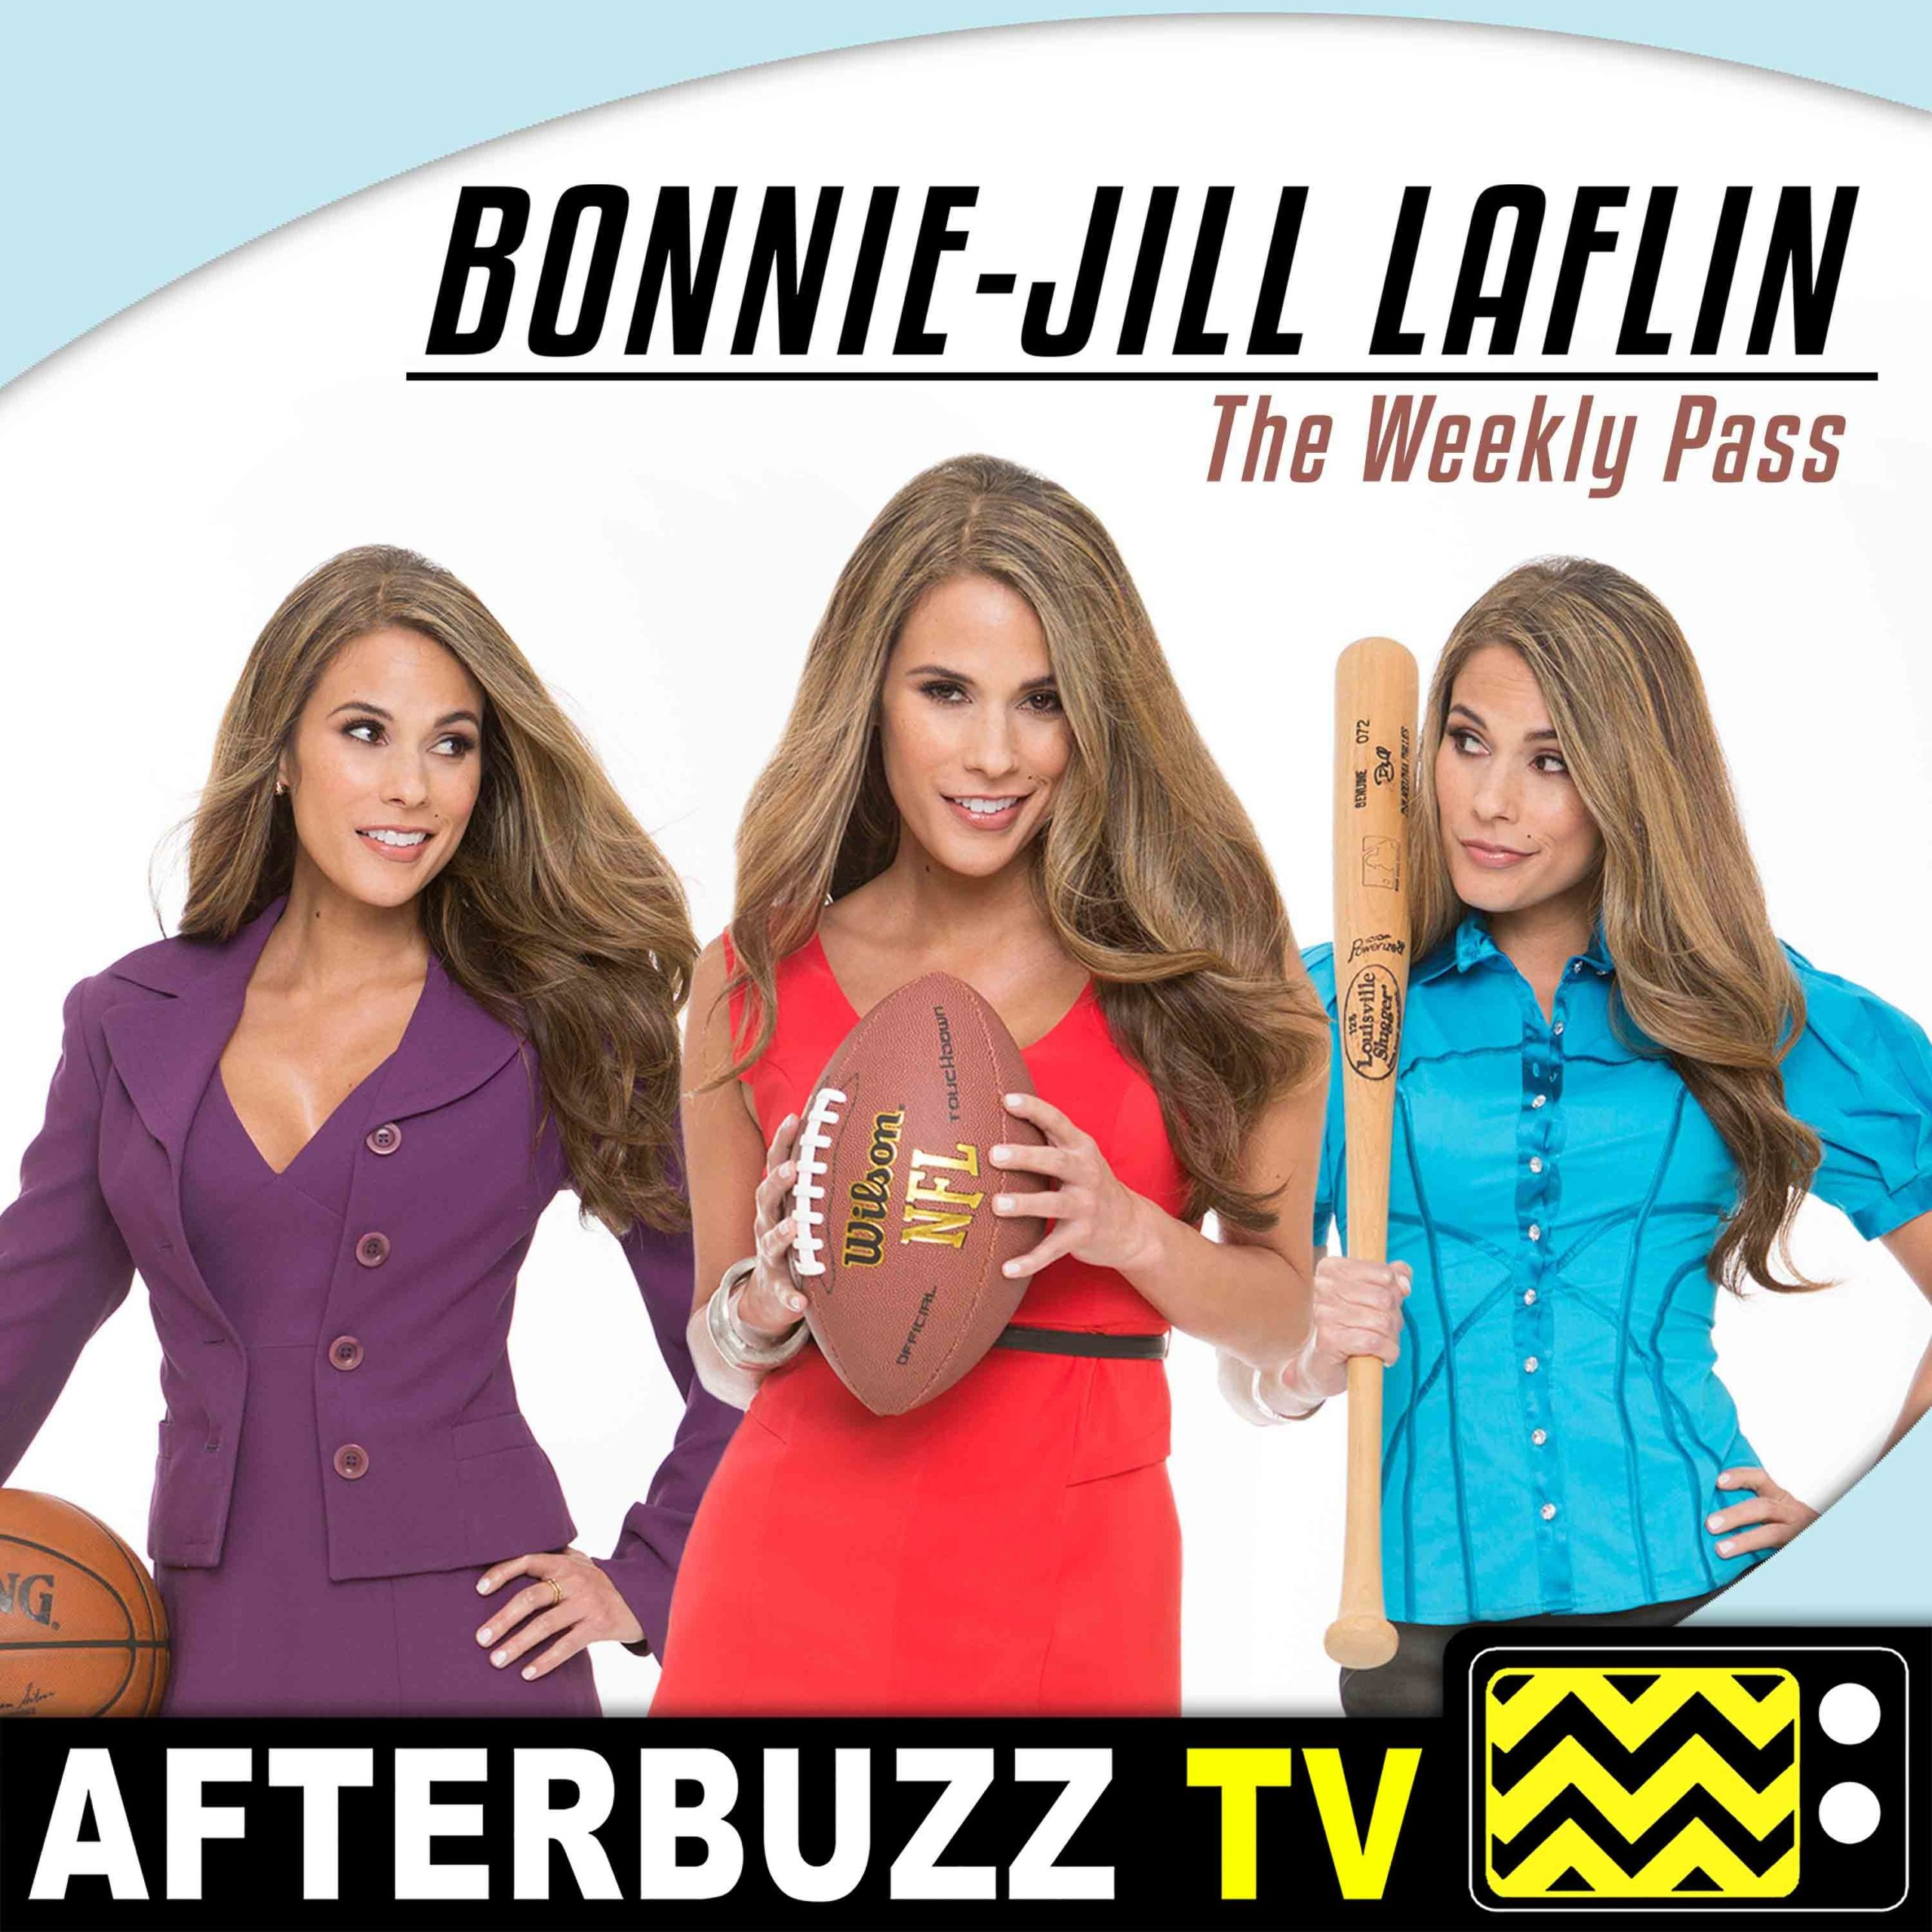 Opening Weekend NFL Talk and Breaking News In Sports | Bonnie-Jill Laflin's The Weekly Pass